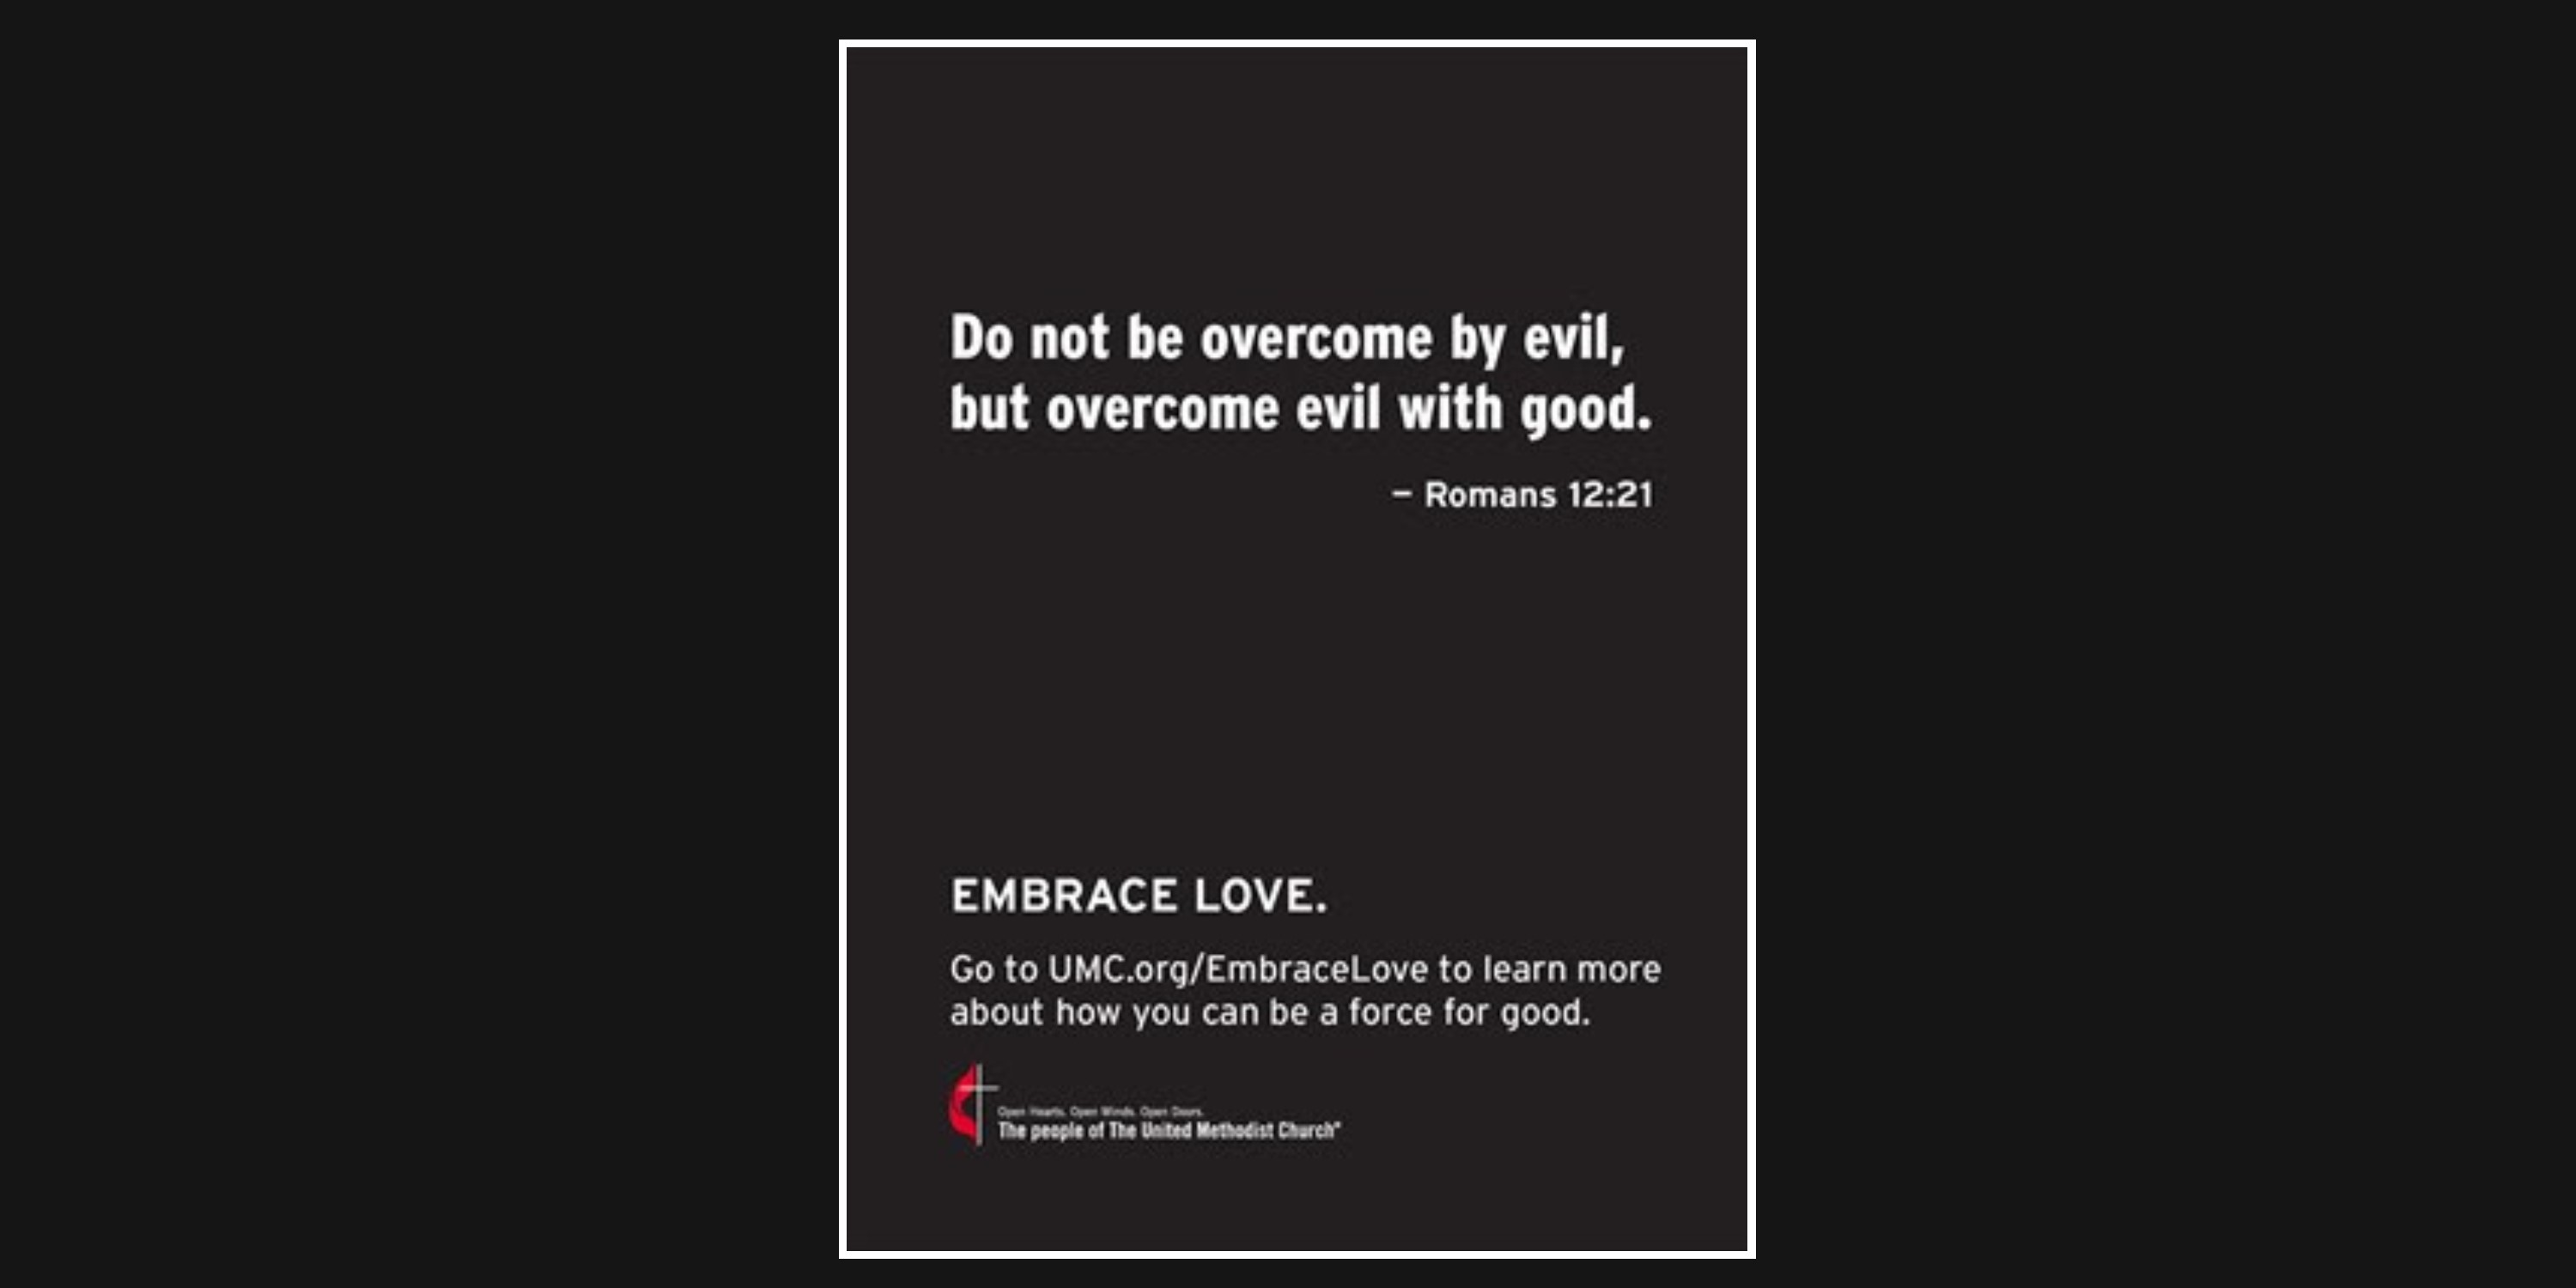 UMC-Embrace-Love-banner